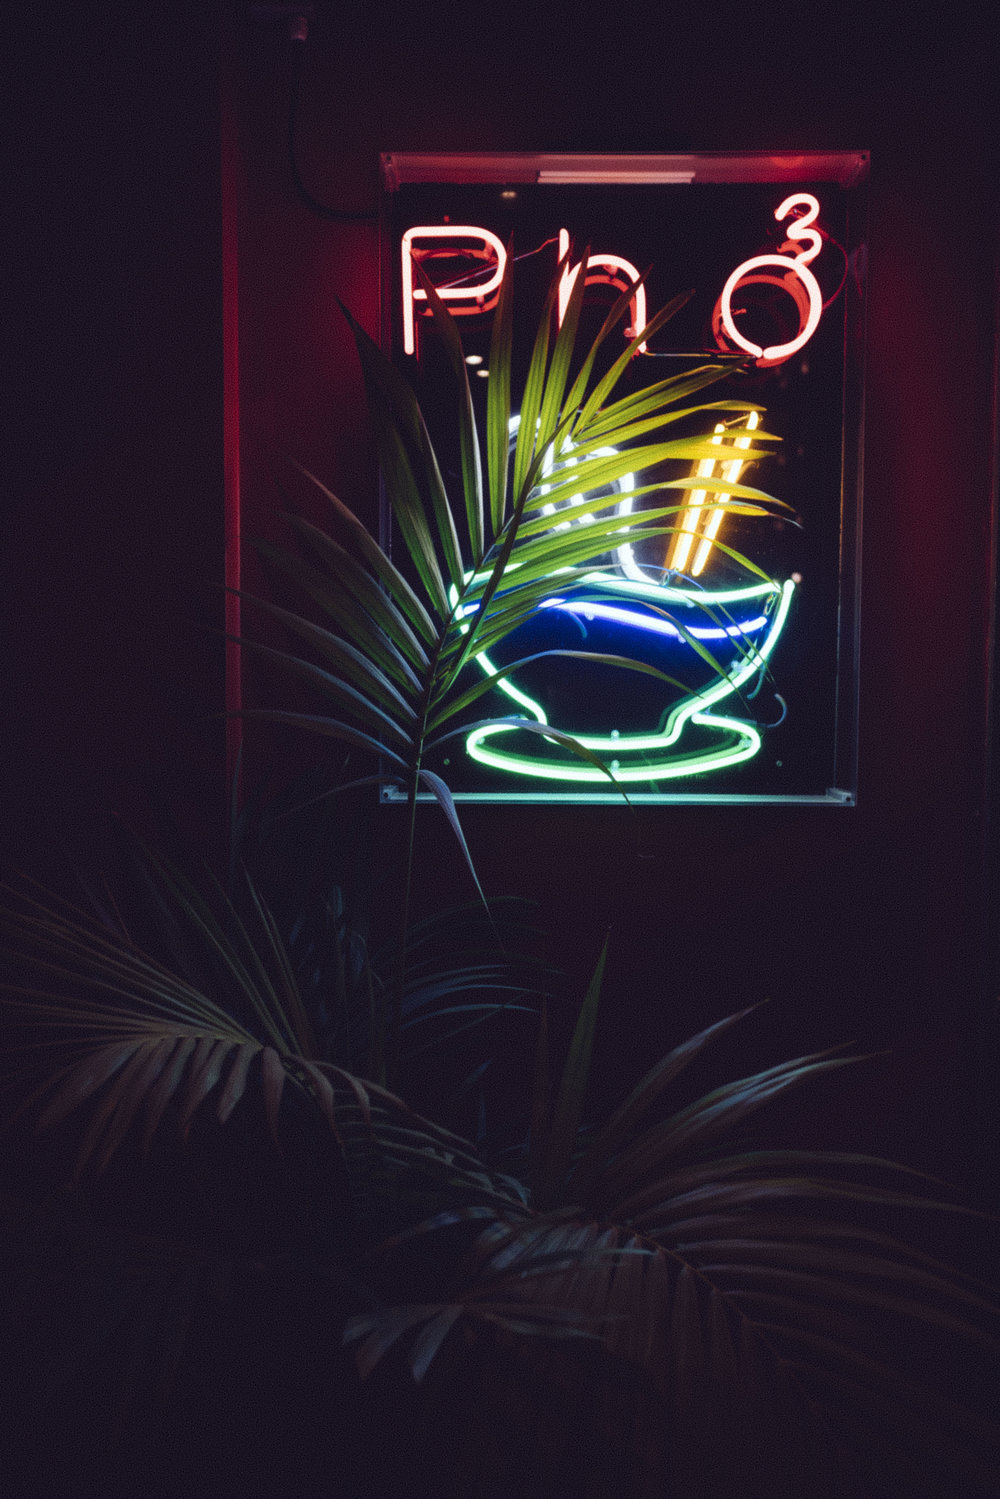 neon pho and some plants